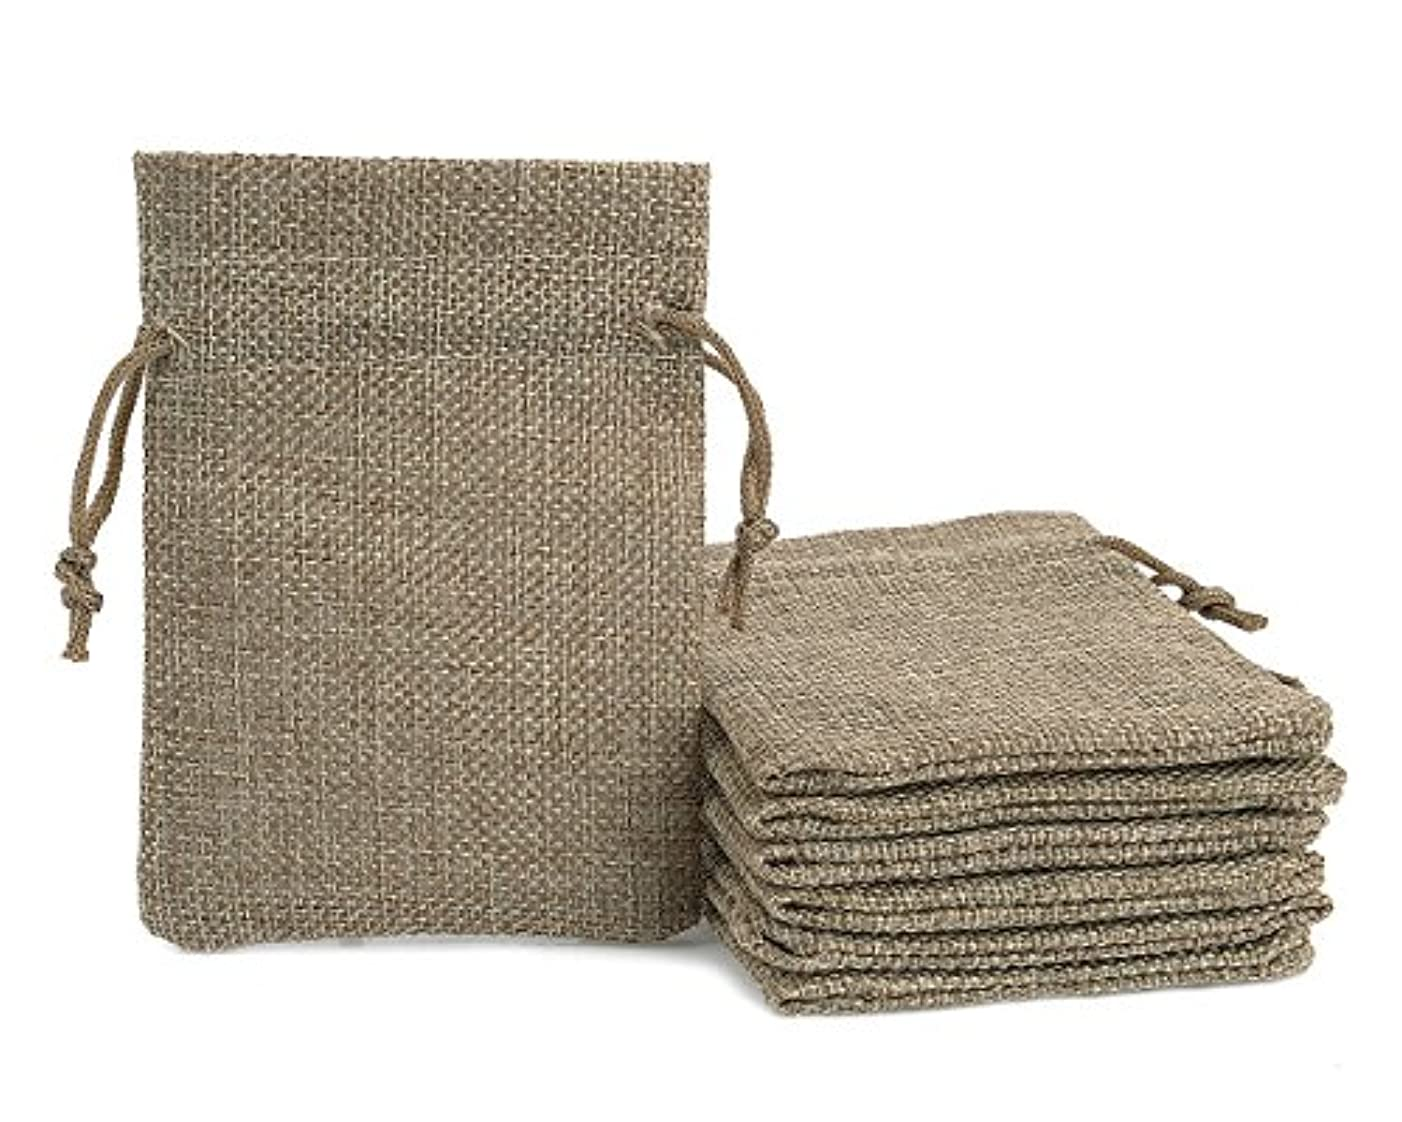 Ace Select 20 Pieces Burlap Bags Drawstring Gift Bags Wedding Party Favor Bags 9cm x 12cm